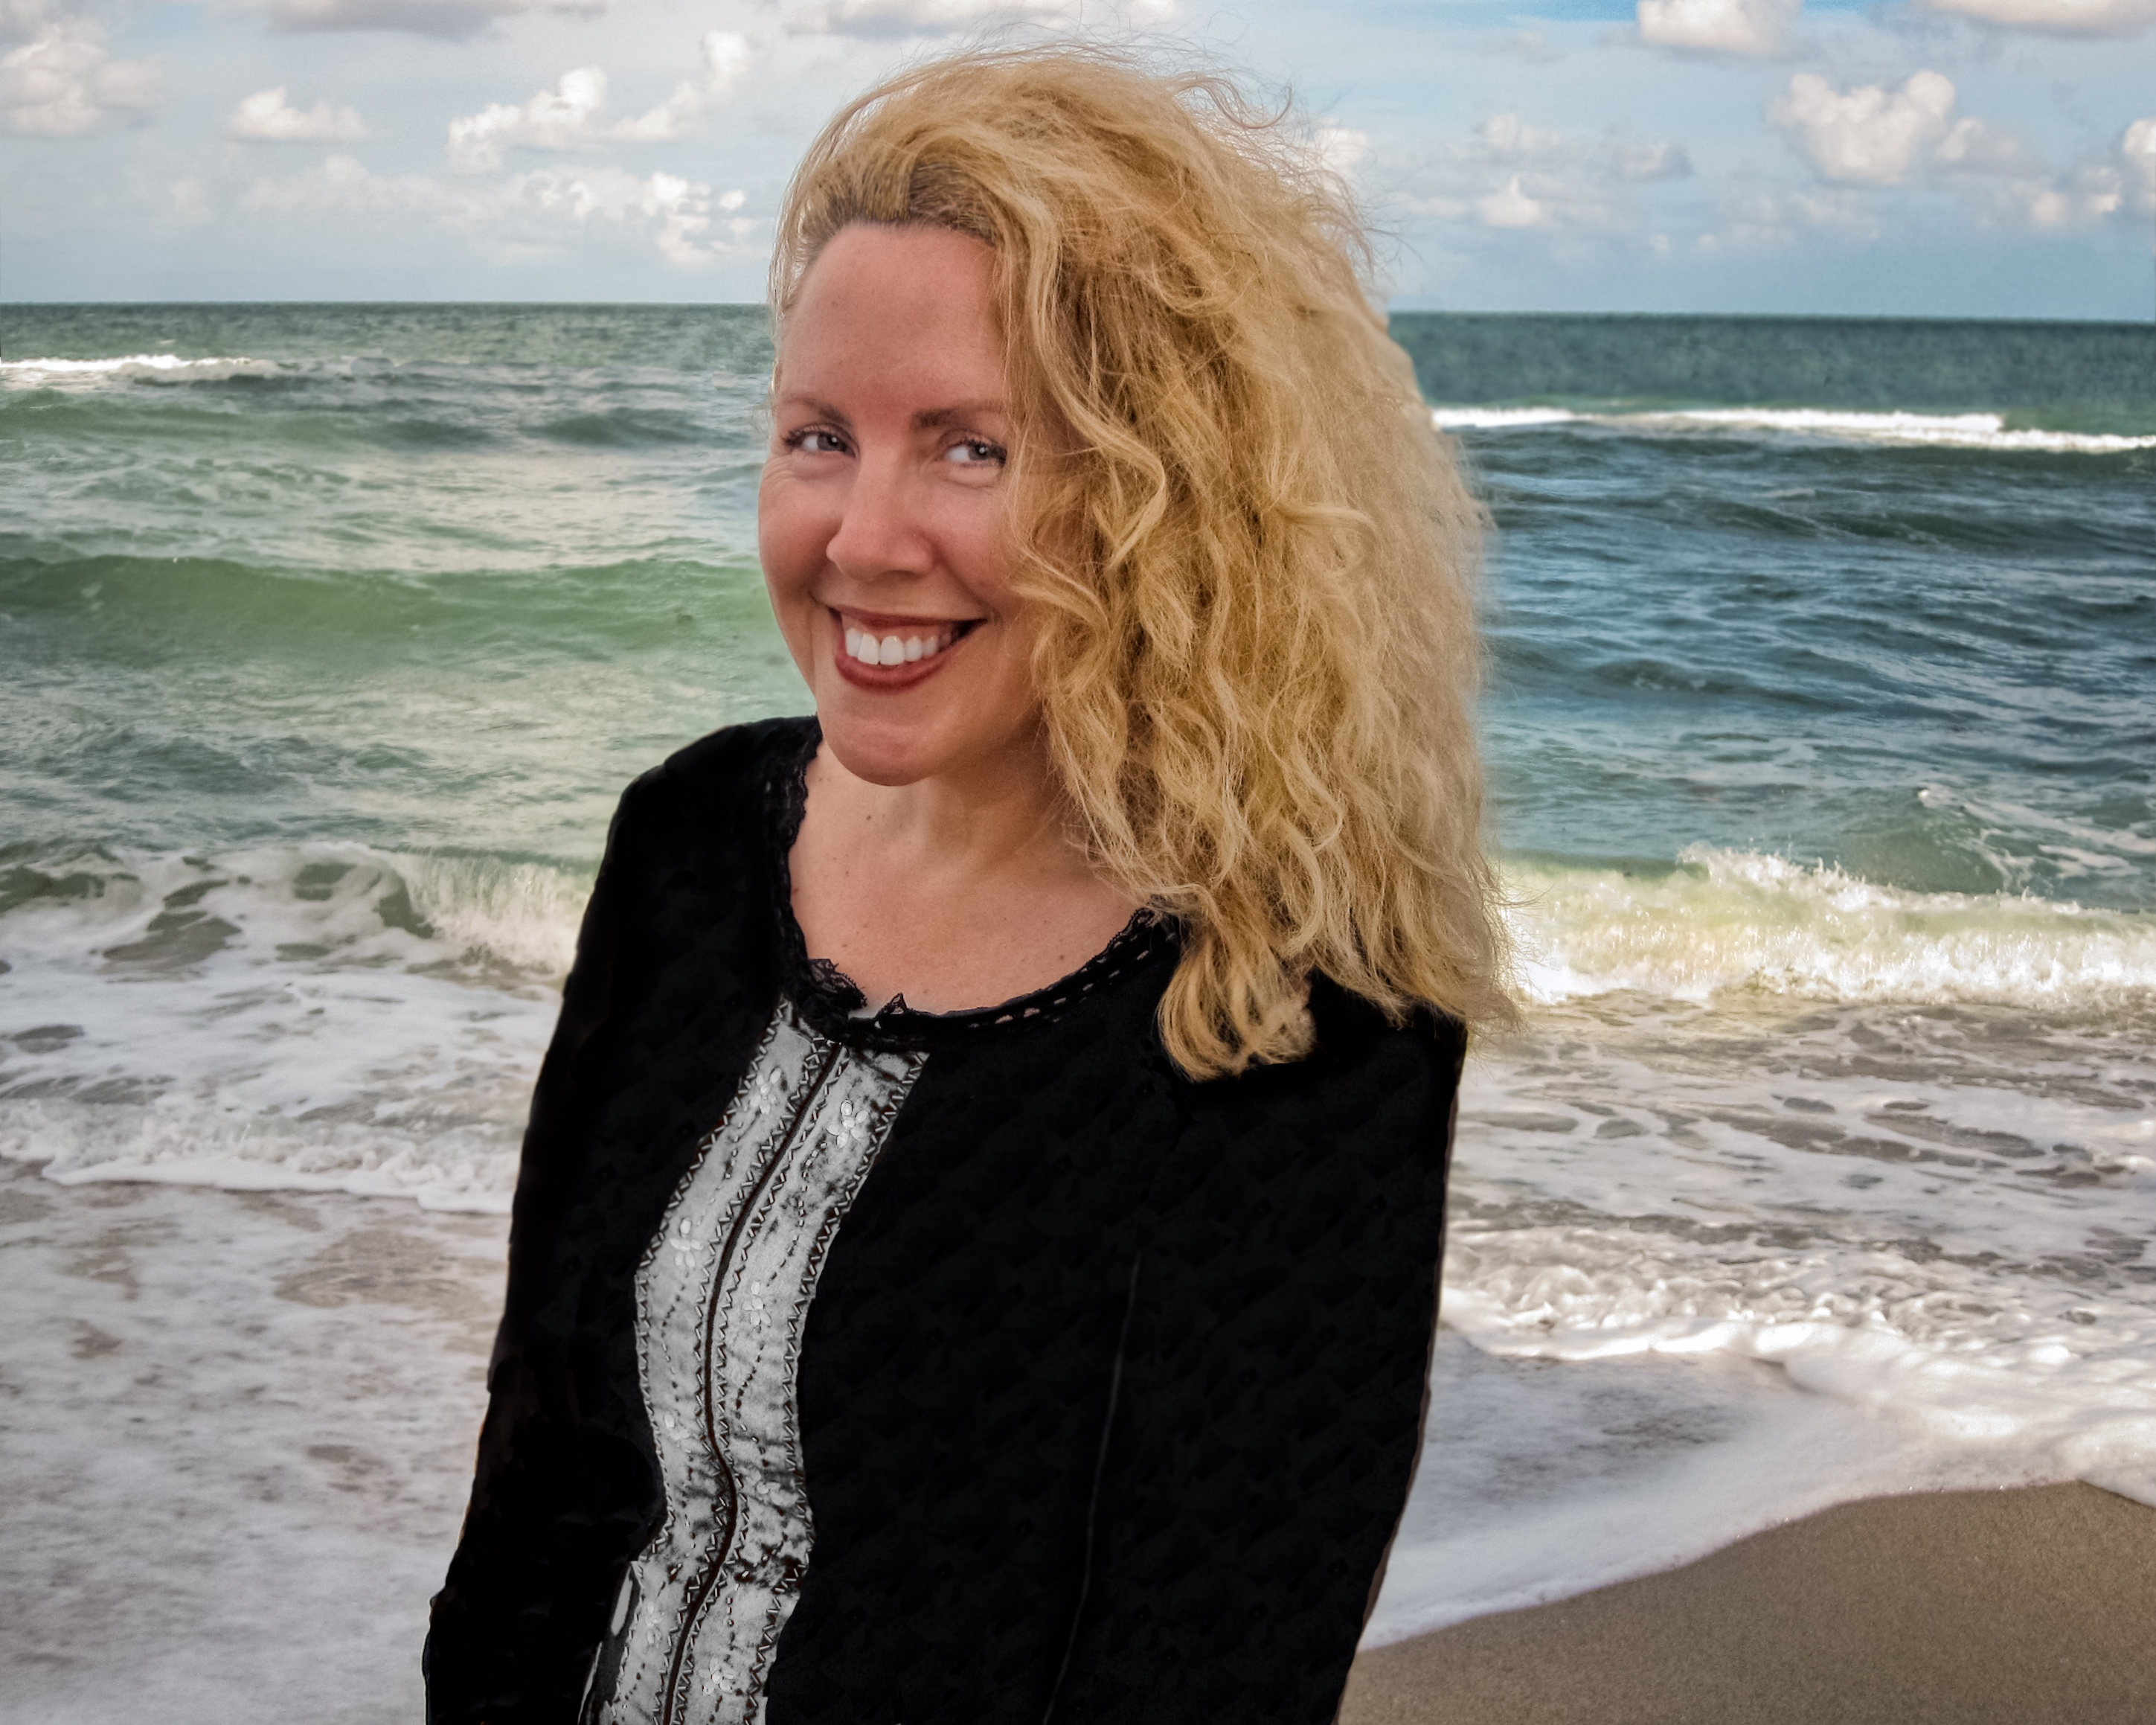 hoagland divorced singles Hoagland's other honors and awards include two grants from the national endowment for the arts, a fellowship to the provincetown fine arts work center, the o b hardison prize for poetry and teaching from the folger shakespeare library, the 2008 jackson poetry prize from poets & writers magazine, as well as the poetry foundation's 2005.